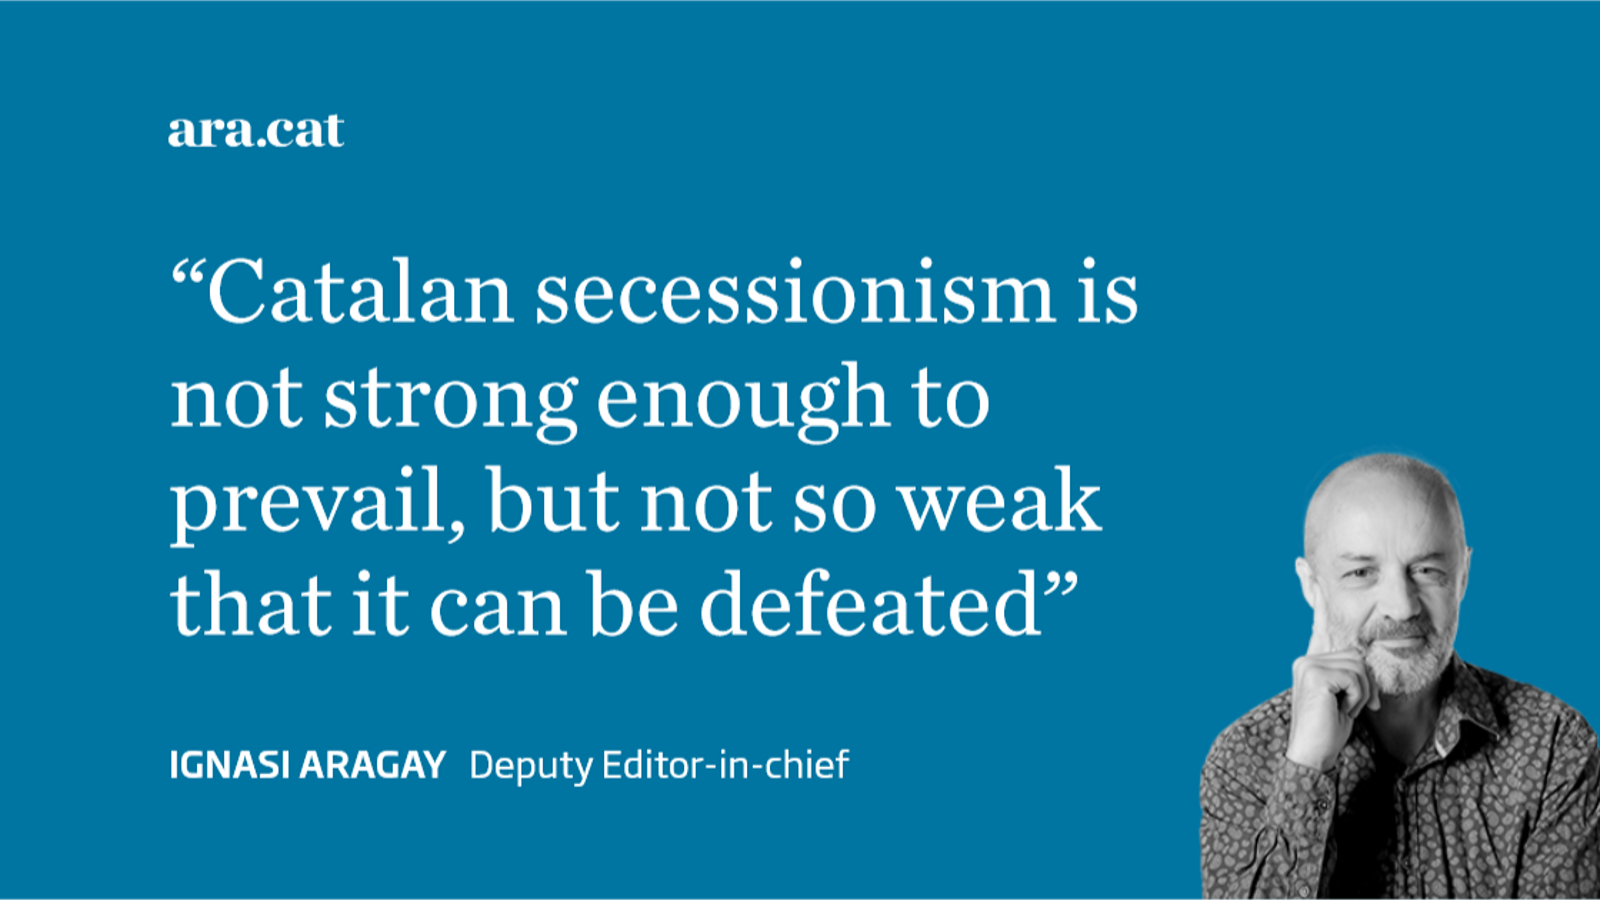 The Catalan feud as told to a foreigner